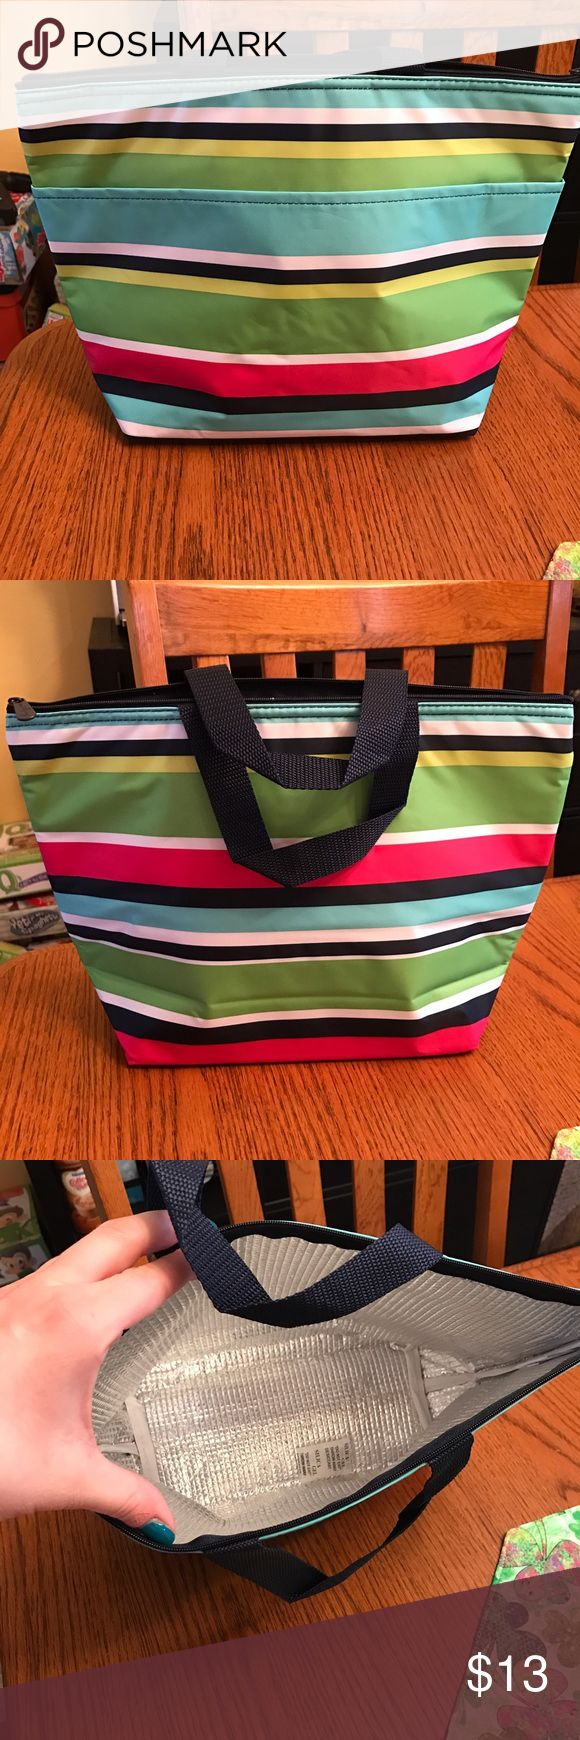 """Thirty One Thermal Tote A classic favorite! It's great for taking lunch on the go. Whether you need to keep your food cool or warm, it does the job. Great for school or work lunch, or for taking to a ballgame. Also great as a baby bag to keep bottles cold. Approx. 9.5""""H x 14""""L x 4.5""""D Color: Preppy Pop Thirty One Bags Totes"""